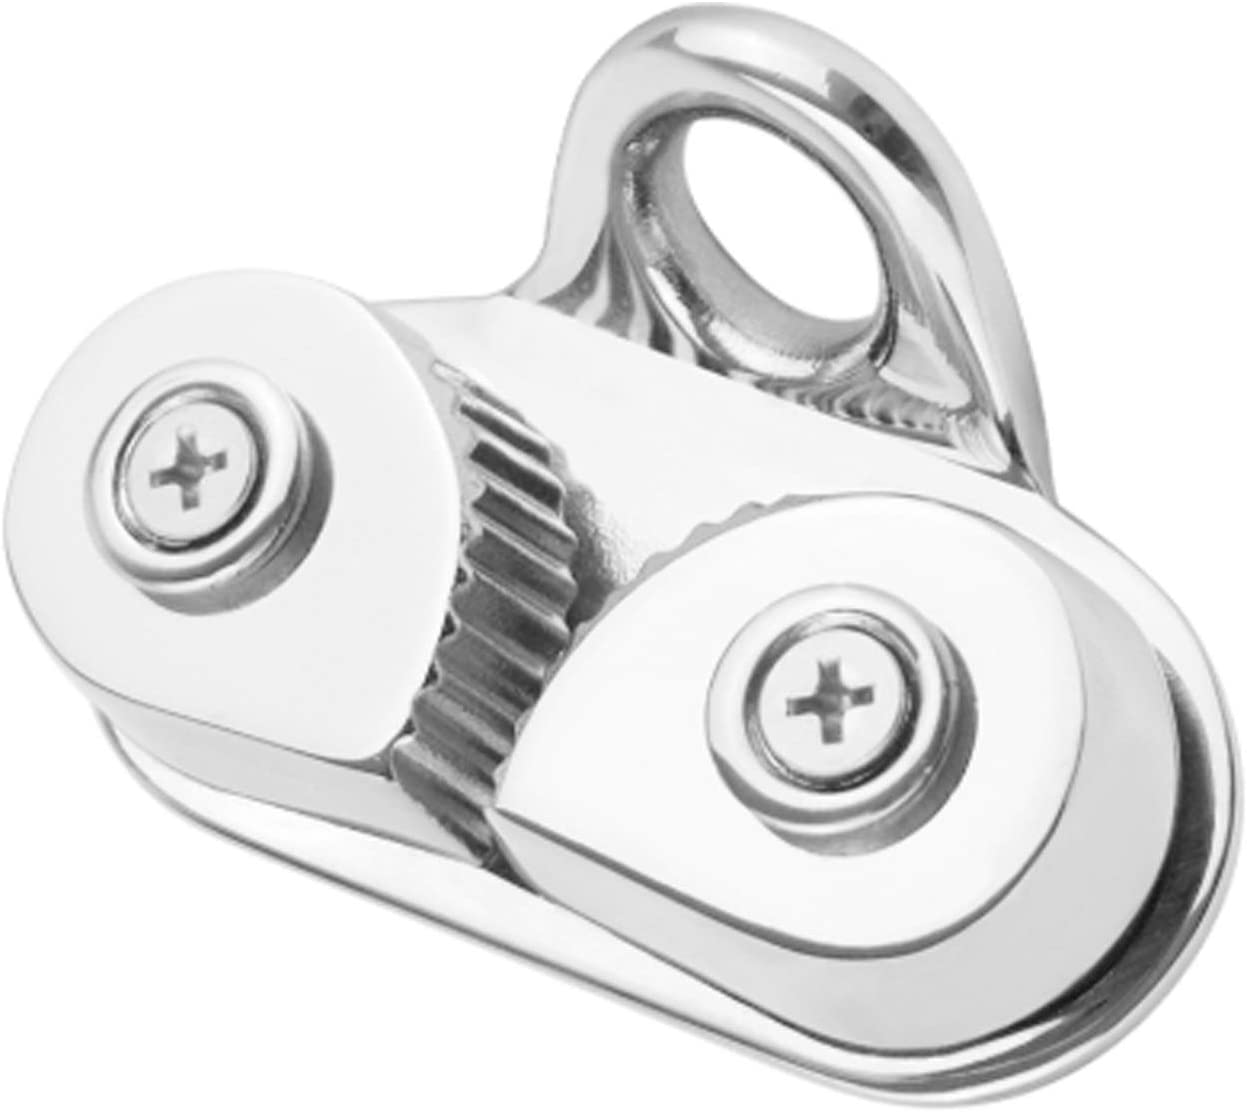 Marine Grade 316 Cam Cleat With Leading Ring Boat Cam Cleats For Marine Sailboat